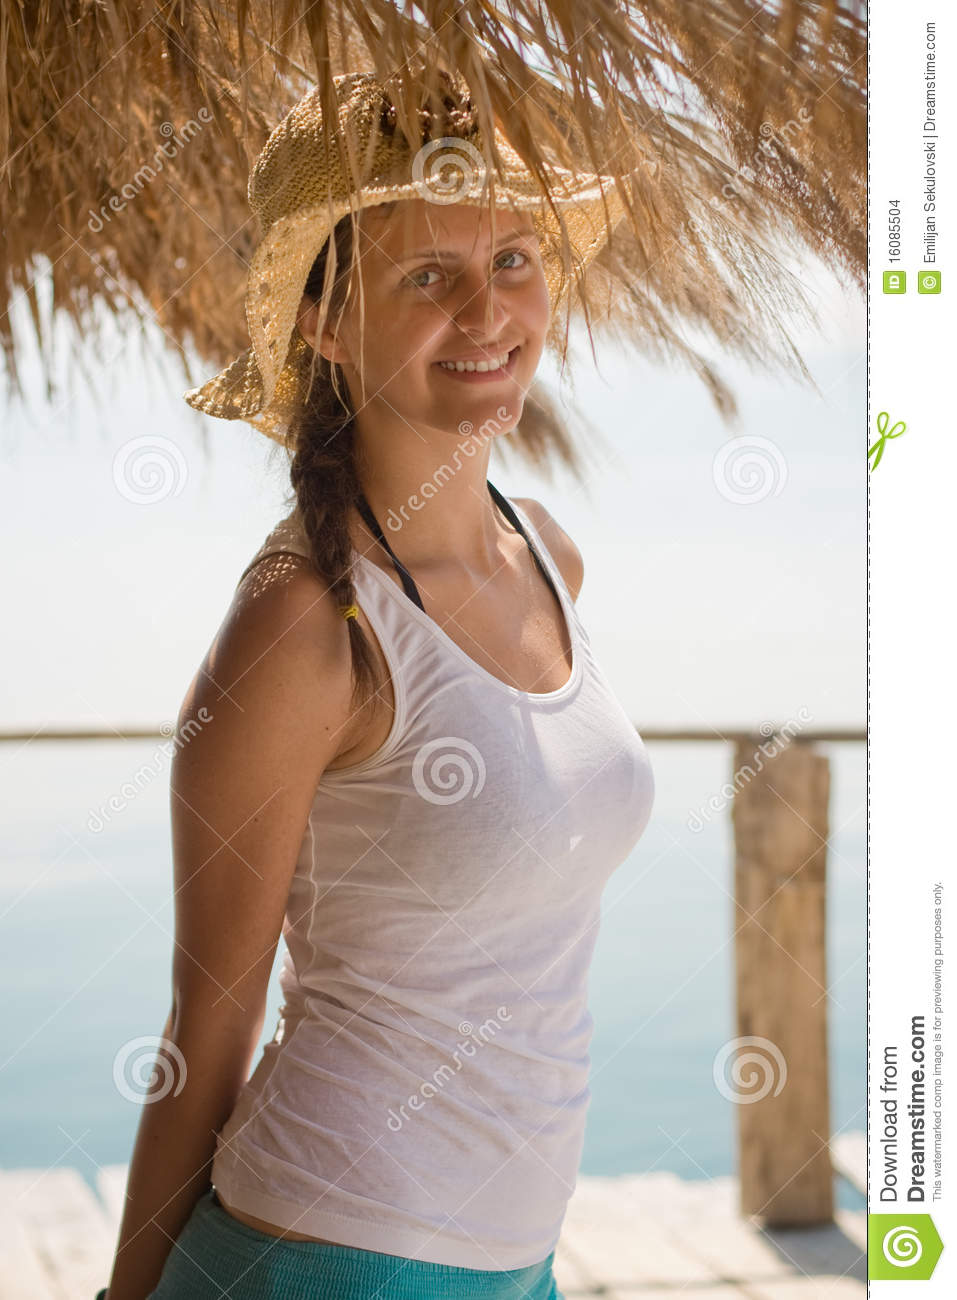 00b894956bec4 Happy Young Girl In White Tank Top Stock Photo - Image of ocean ...